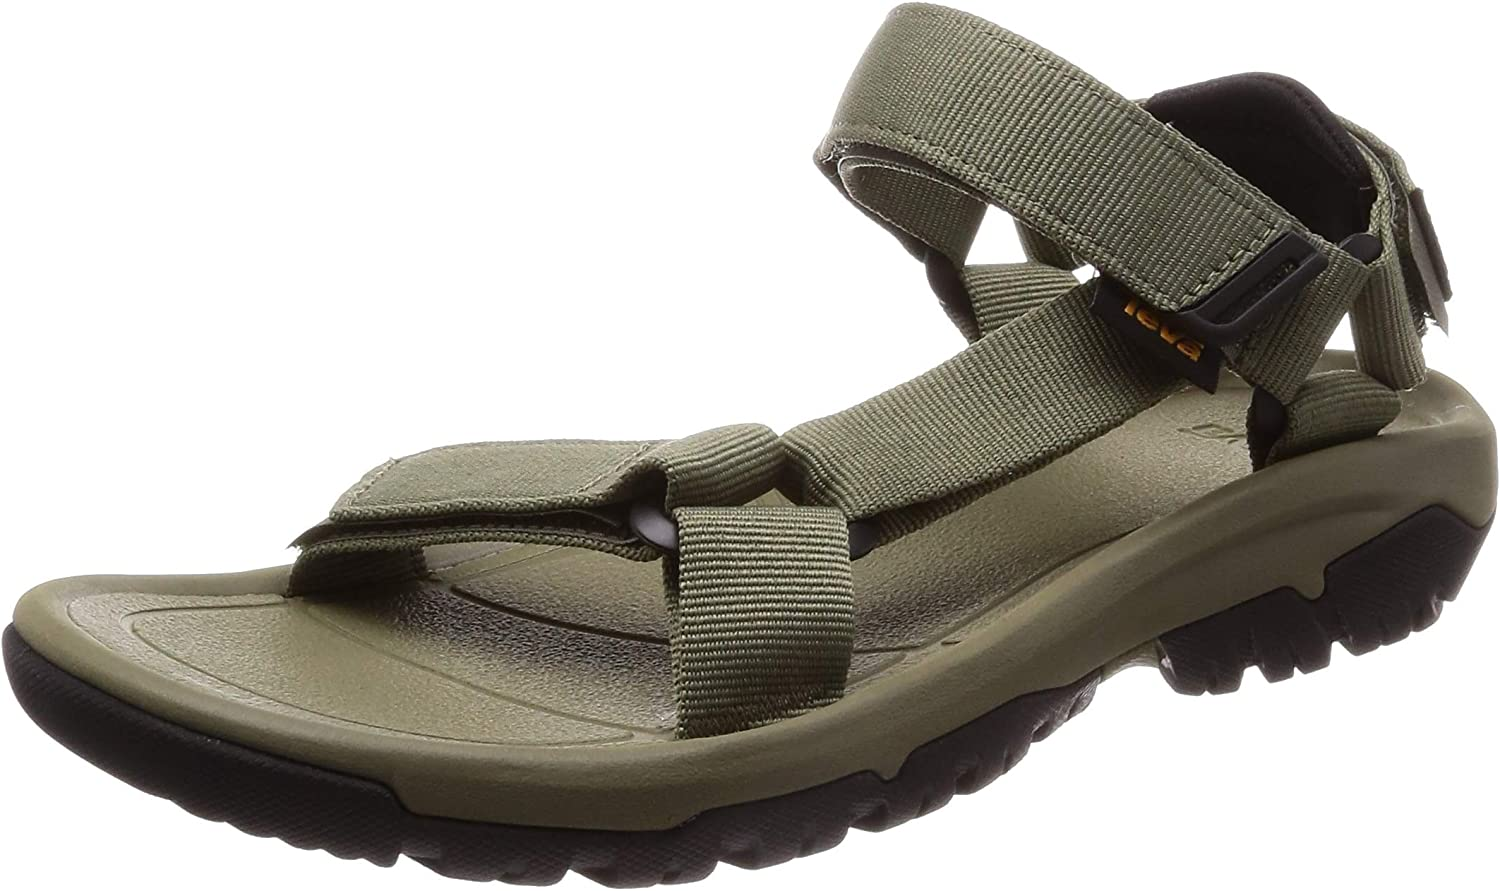 Teva Hurricane XLT2 Sandals - SS19